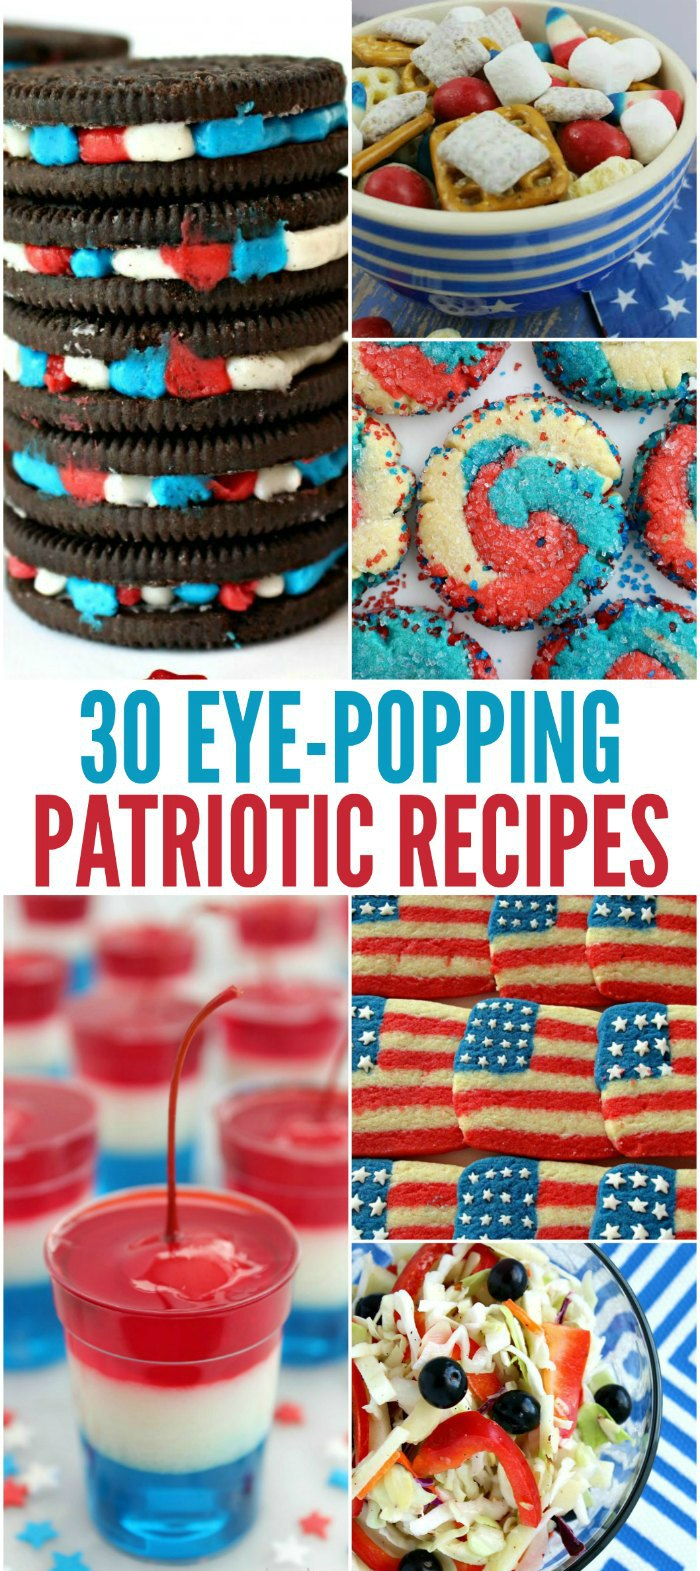 30 Eye-Popping Patriotic Recipes. Perfect for a 4th of July picnic, Memorial Day backyard BBQ or Veteran's Day neighborhood gathering | Mommy Evolution